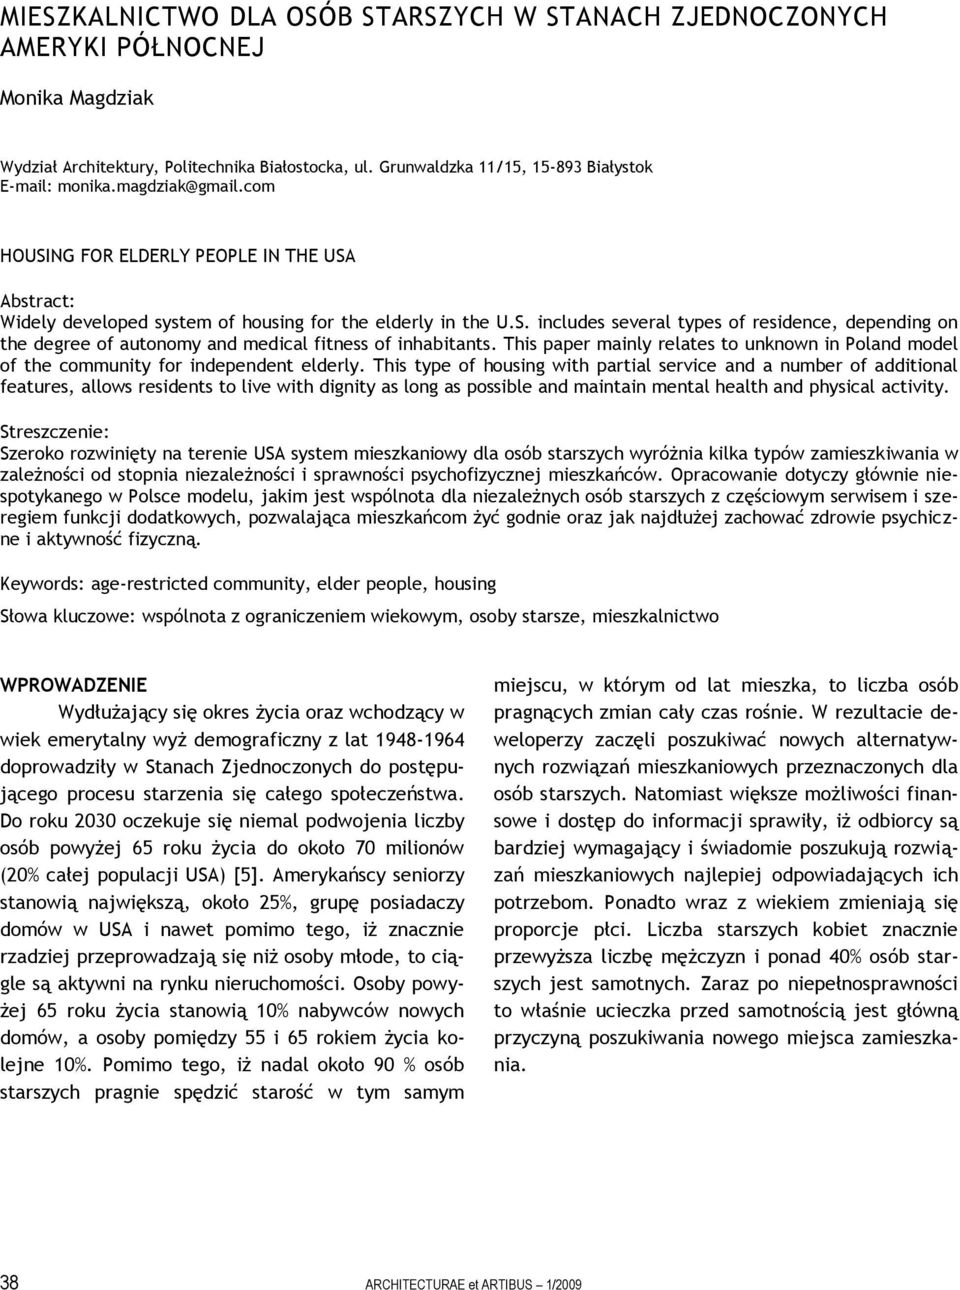 This paper mainly relates to unknown in Poland model of the community for independent elderly.